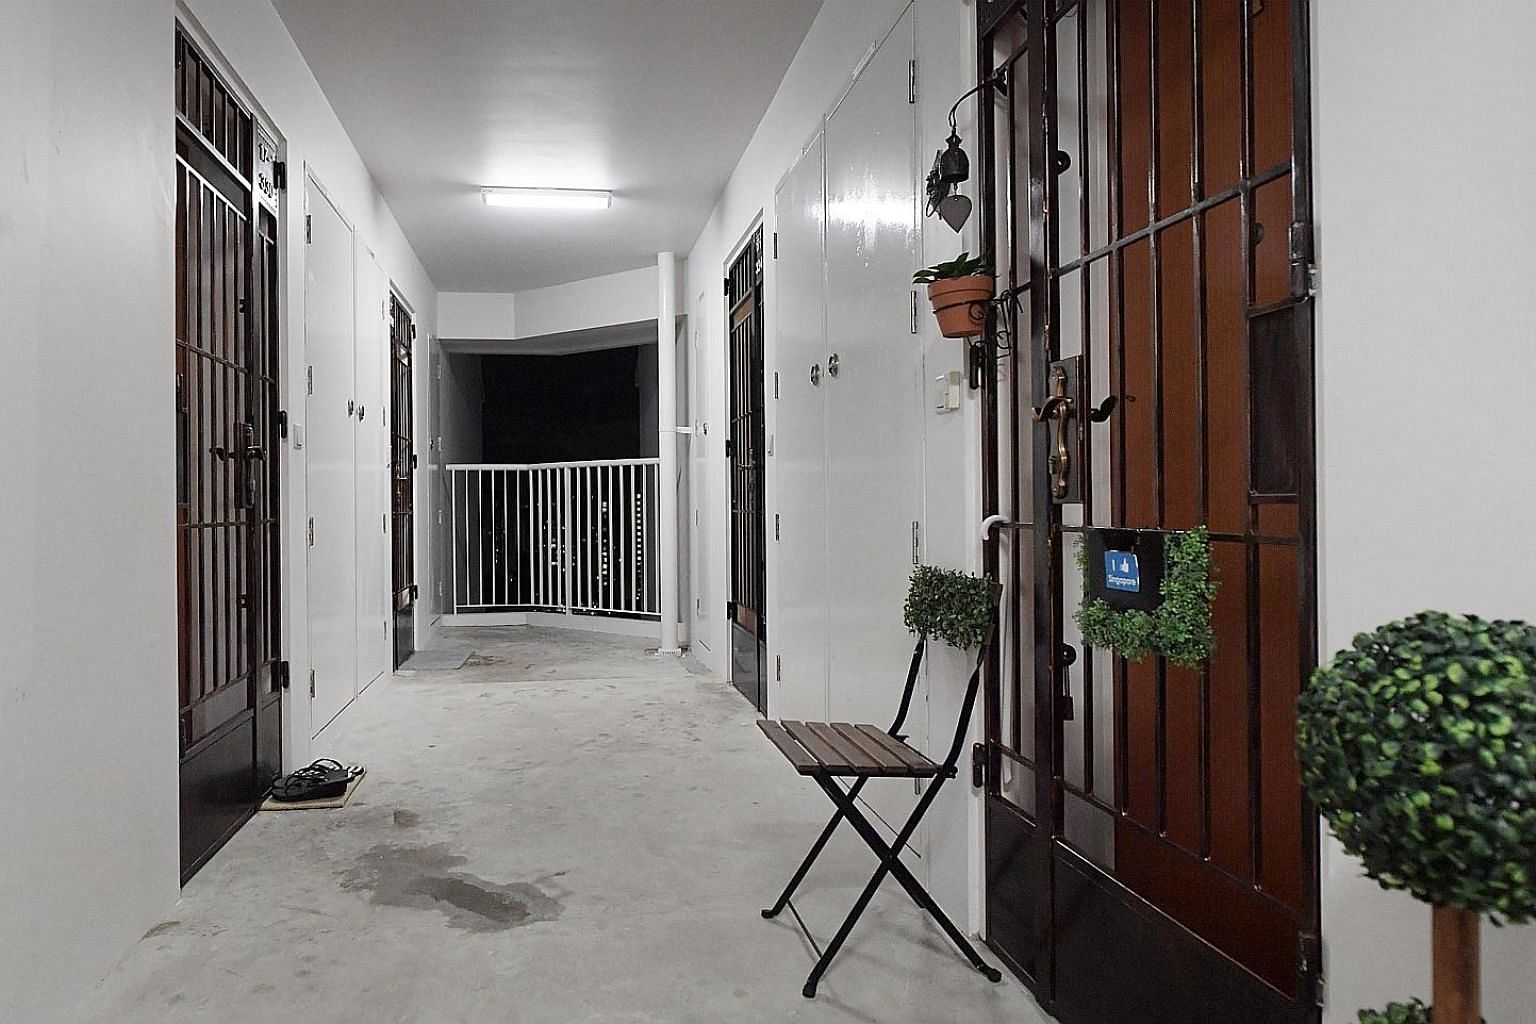 One of the two cases involved a housewife who lived in a unit (front, right) in Punggol. The other involved a couple from Bukit Panjang. In both cases, they were accused by their neighbours of creating a din.